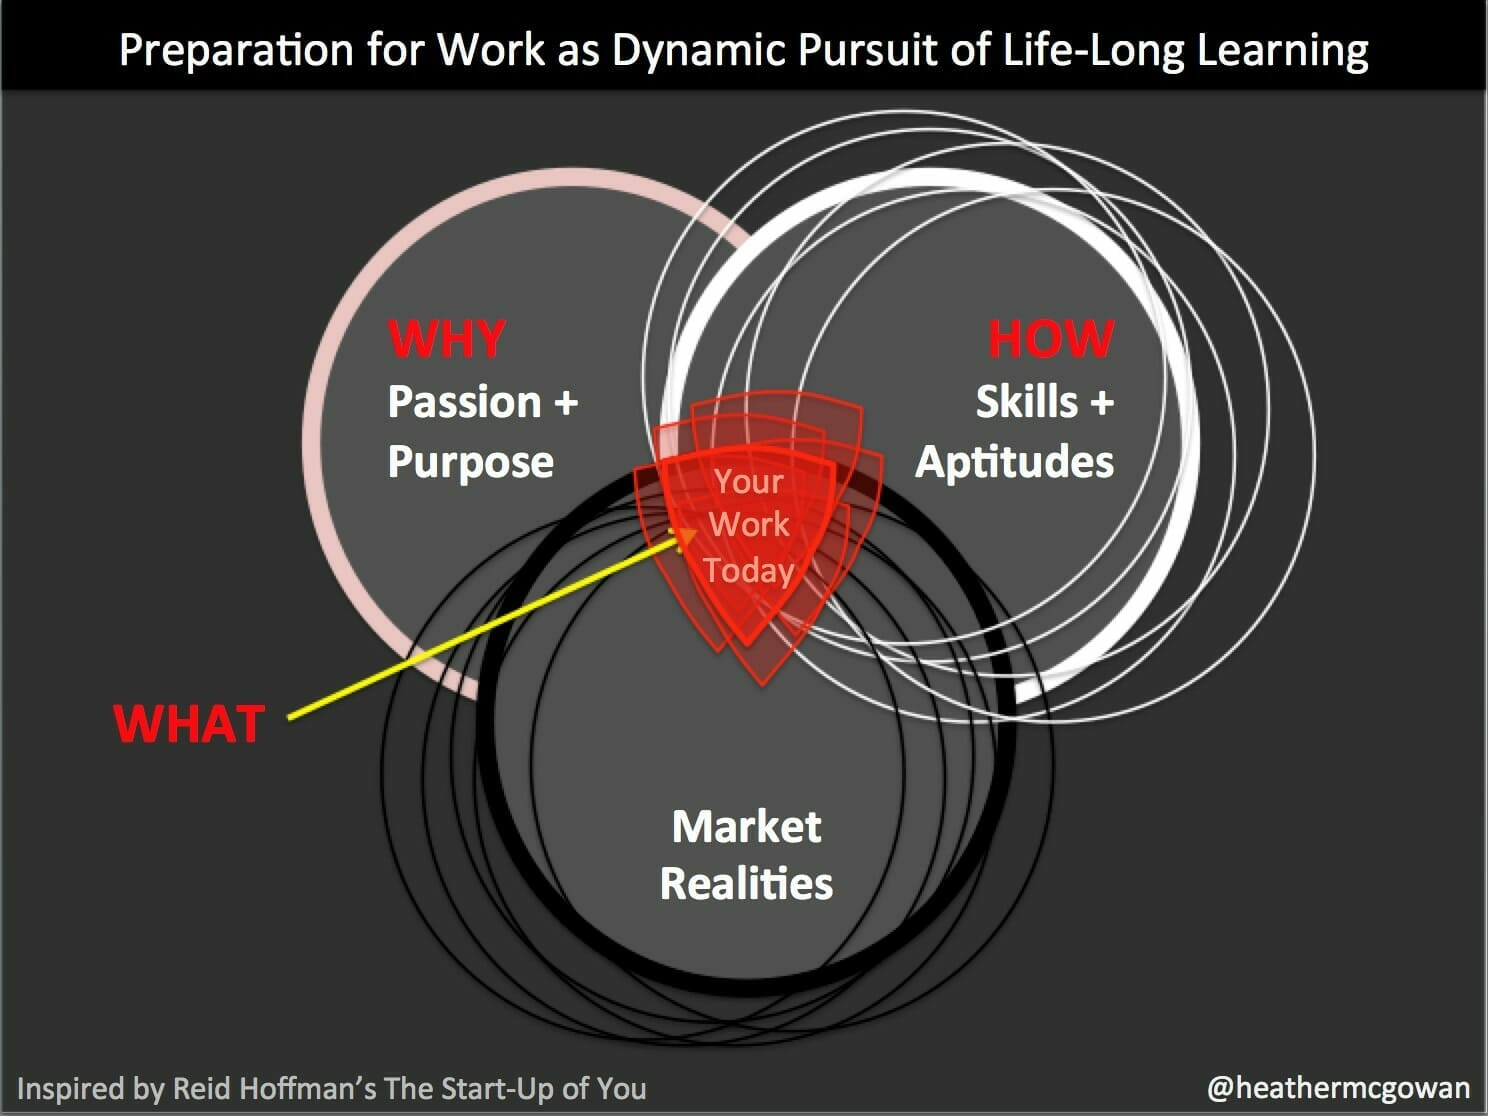 Preparation for Work as Dynamic Pursuit of Lifelong Learning